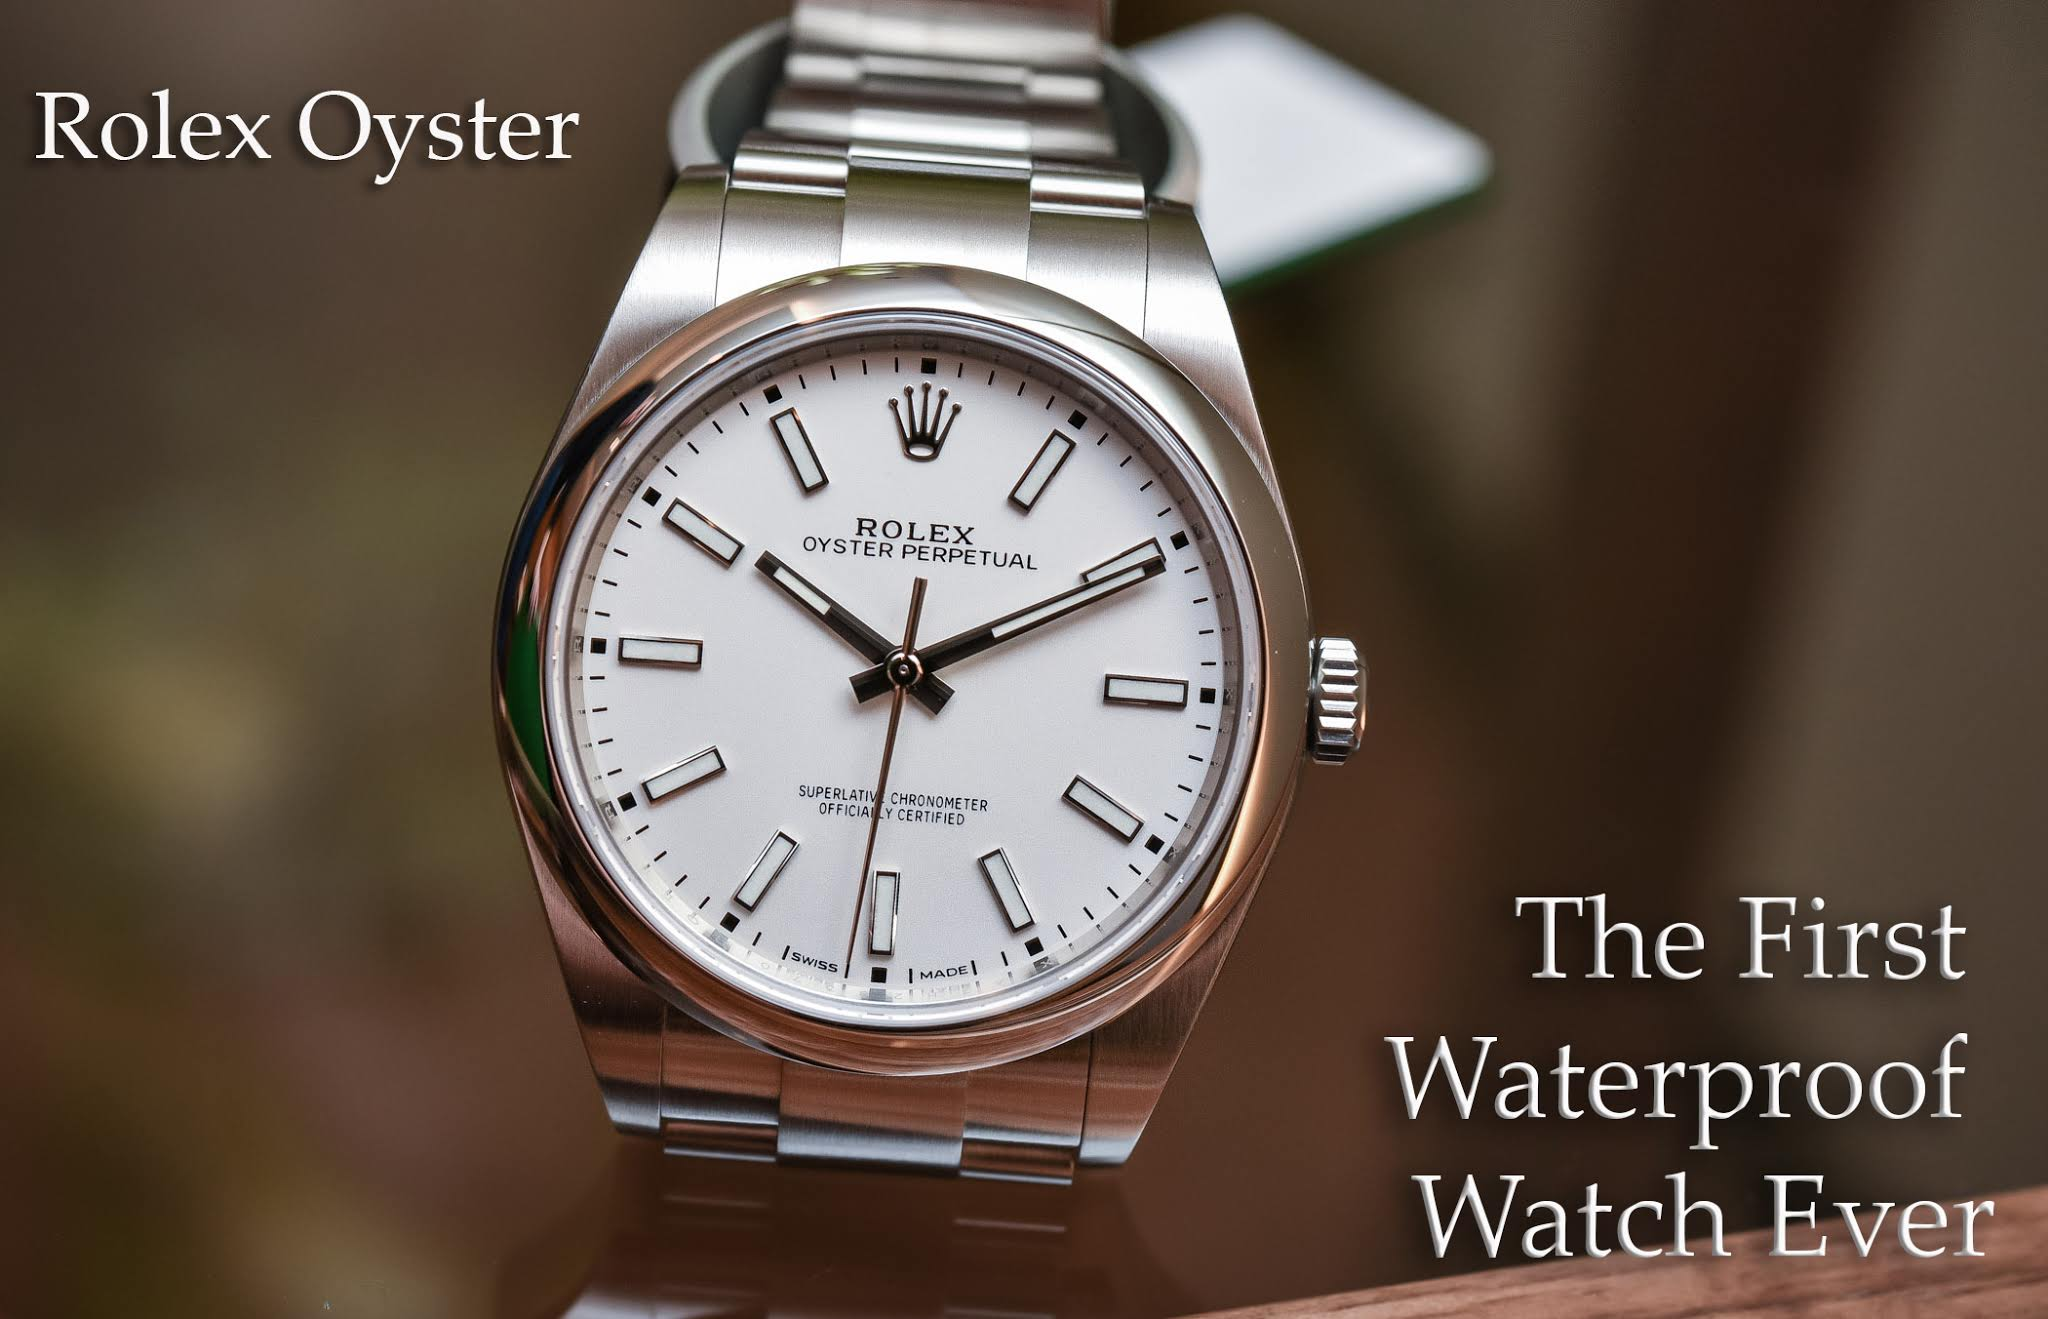 The First Waterproof Watch And Dustproof Watch Ever Rolex Oyster